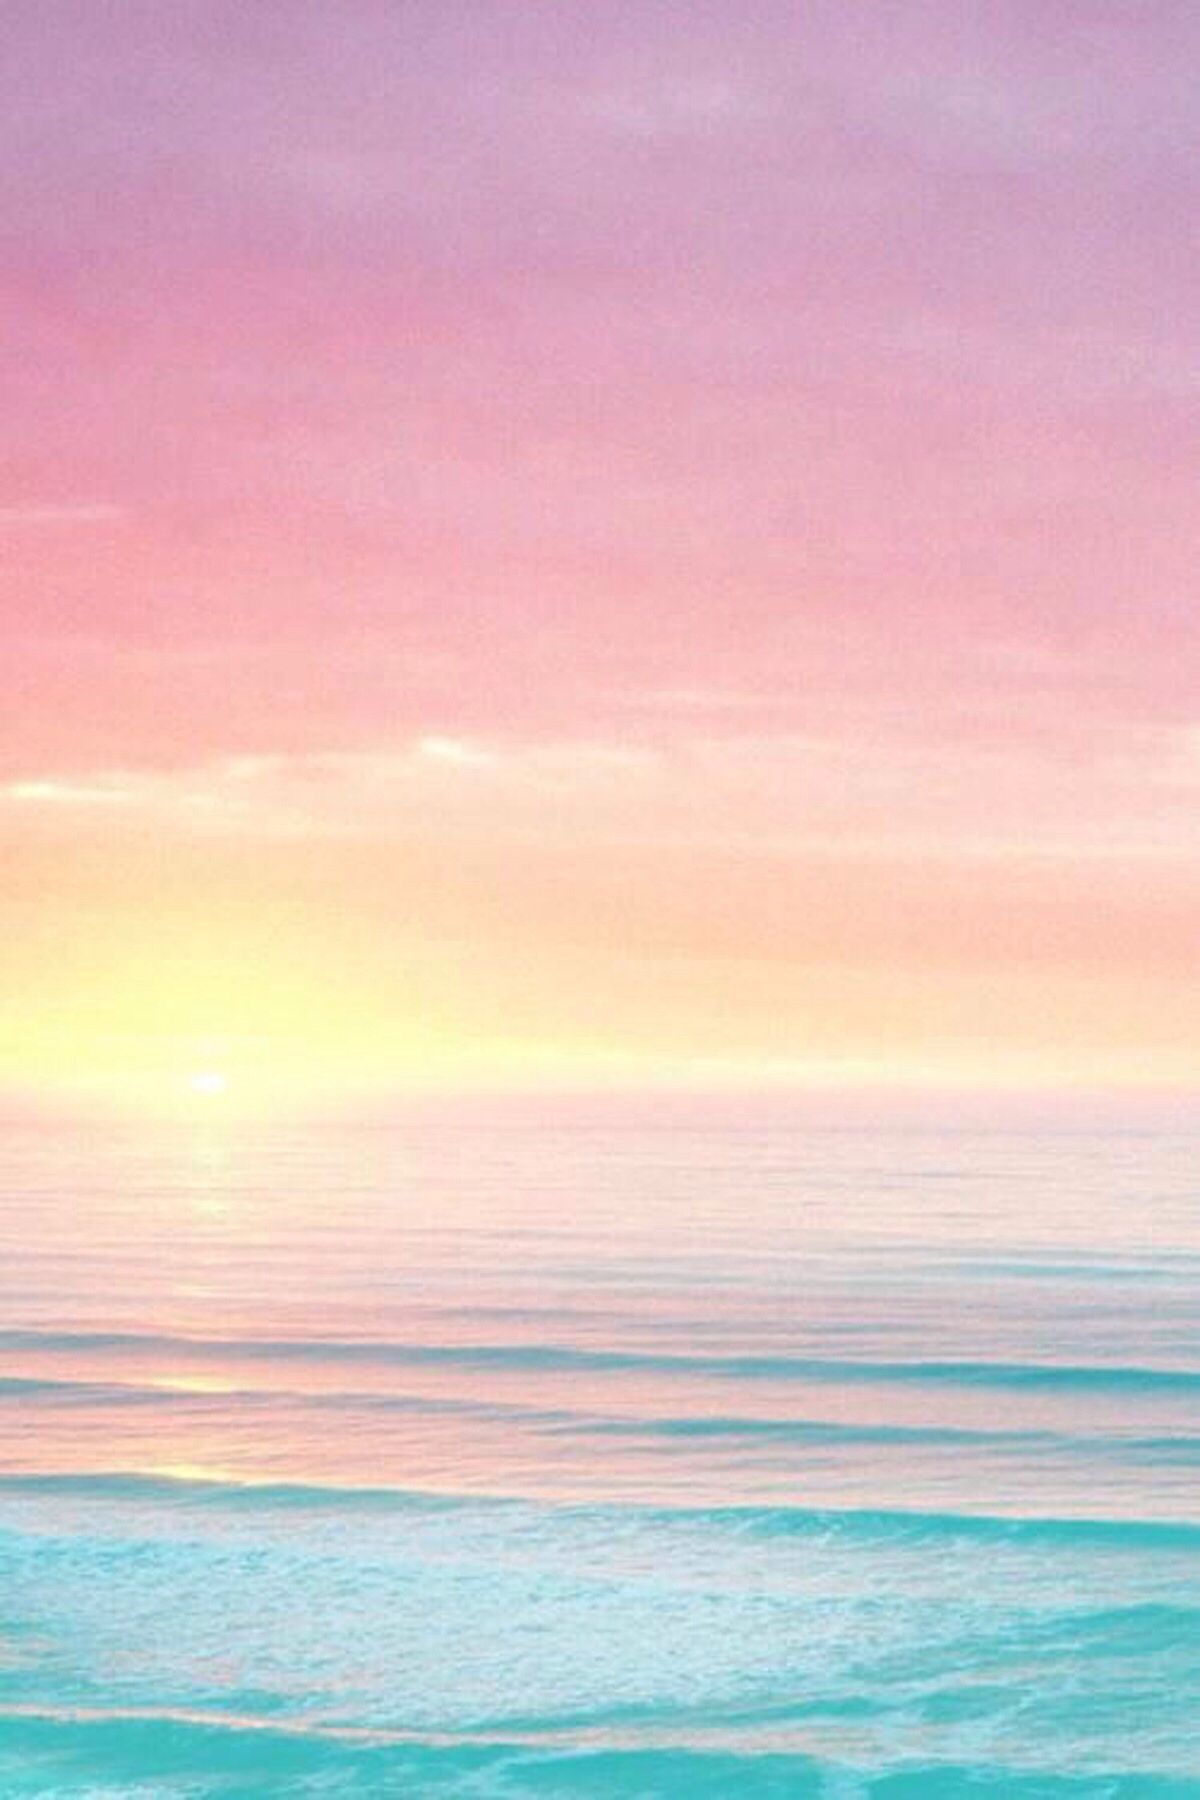 Beach sunset pretty wallpaper Cute Phone Wallpaper